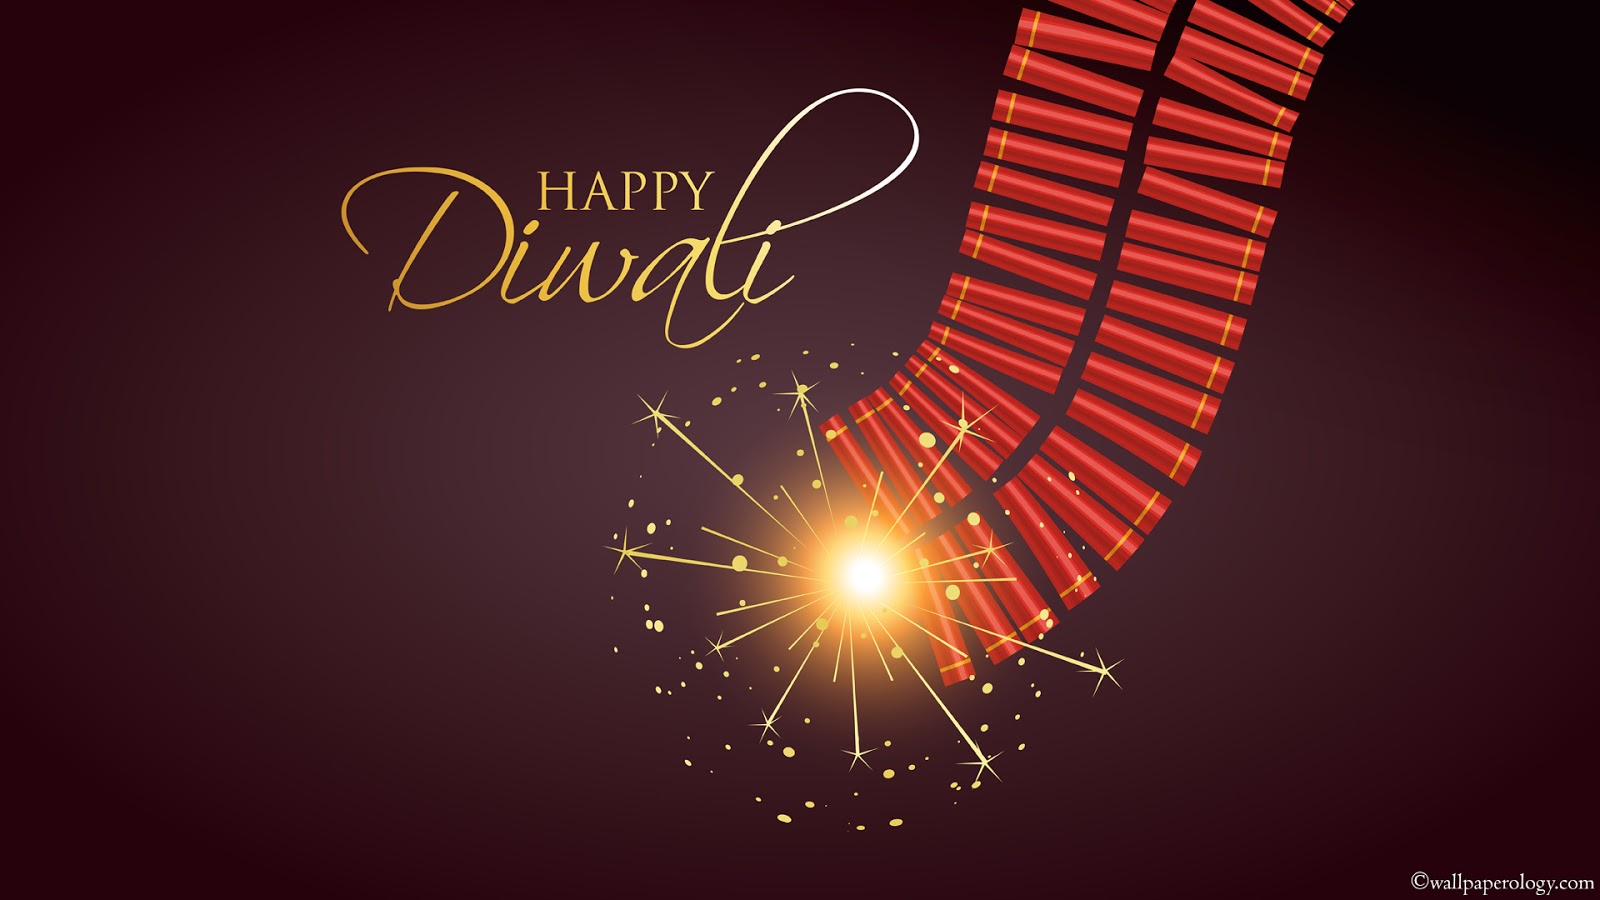 happy diwali essay happy diwali essay and so this was my collection of happy diwali essay and which is very heplful for your kids to getting right knowledge so enjoying these happy 7